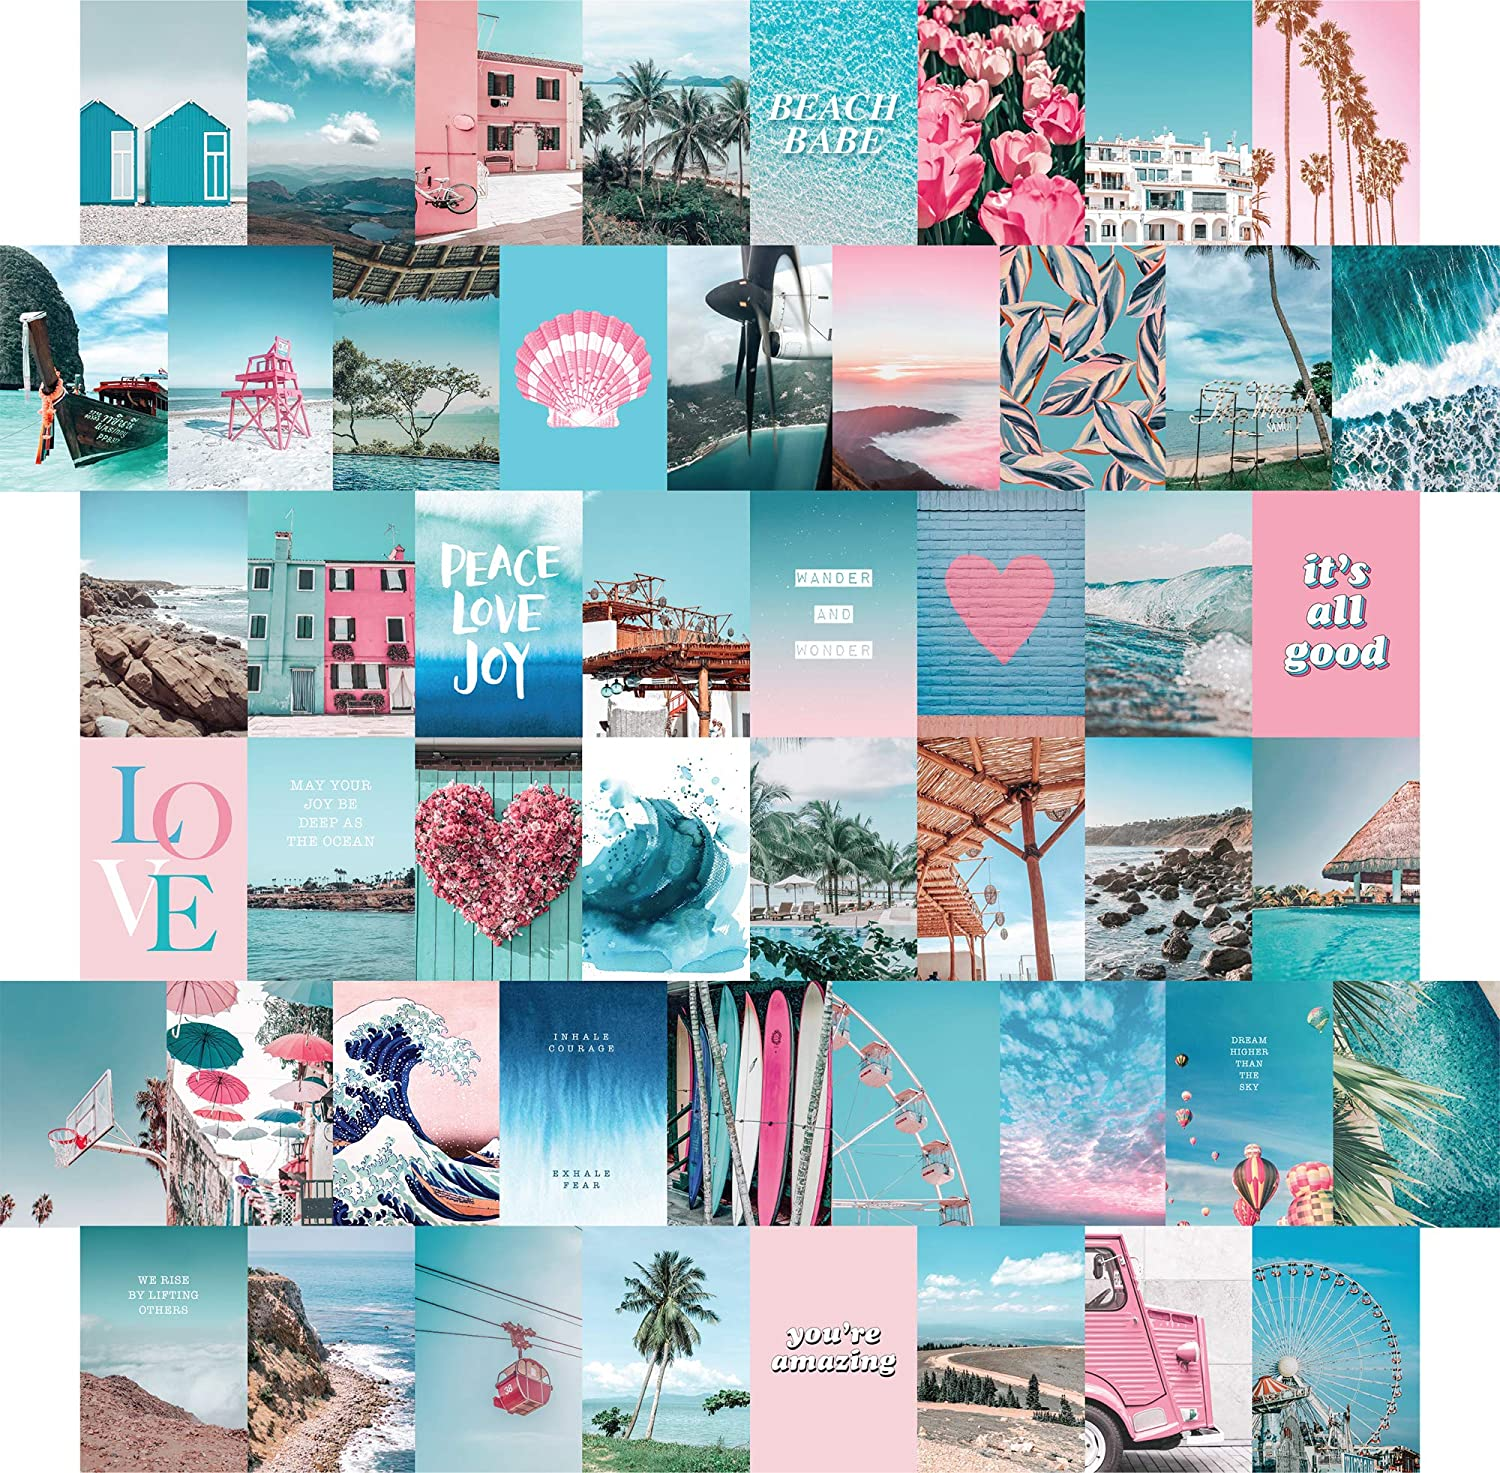 Posters Prints Blue Aesthetic Wall Collage Kit 50 Set 4x6 Inch Pink Vsco Room Decor For Teen Girls Small Posters For Room Aesthetic Dorm Photo Collection Summer Beach Wall Art Print